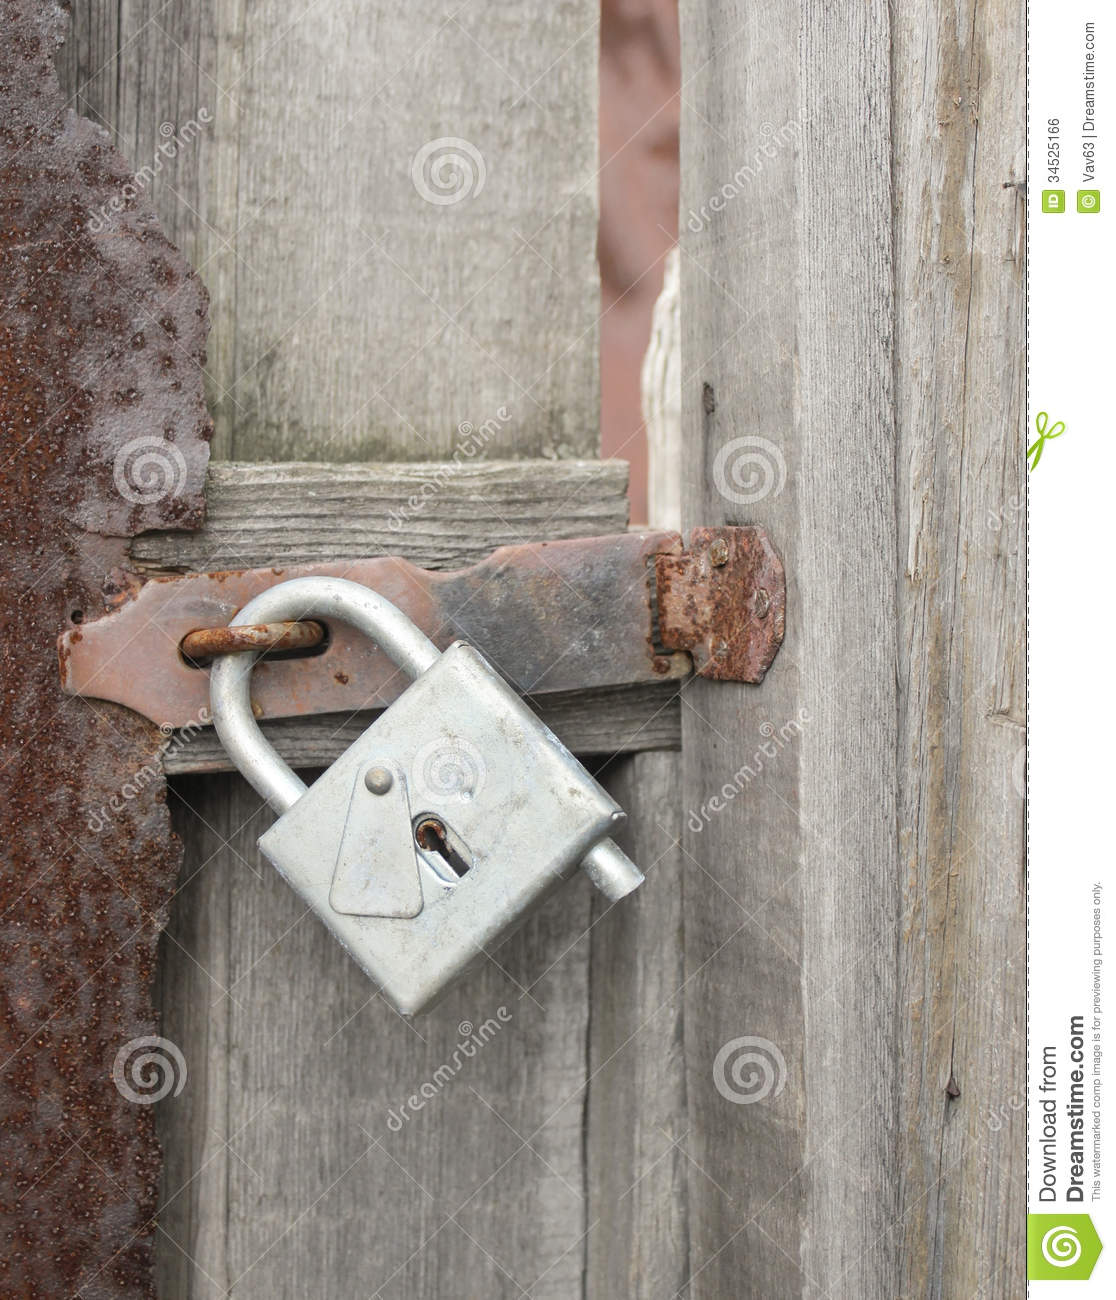 Decorating wicket door images : Wicket door with a padlock stock photo. Image of protection - 34525166